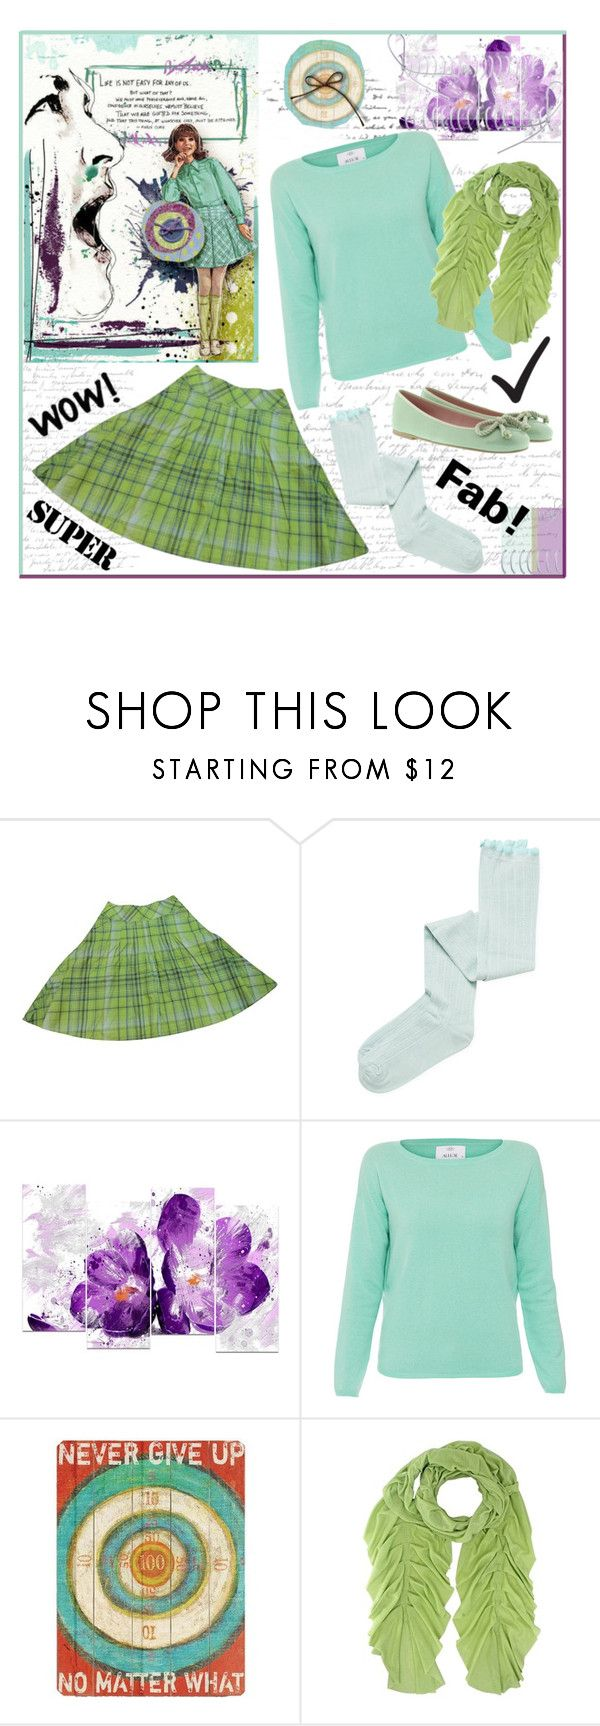 """School Daze"" by outfitsloveyou ❤ liked on Polyvore featuring Max&Co., Intimately Free People, Design Art, Allude, Home Decorators Collection and Pretty Ballerinas"